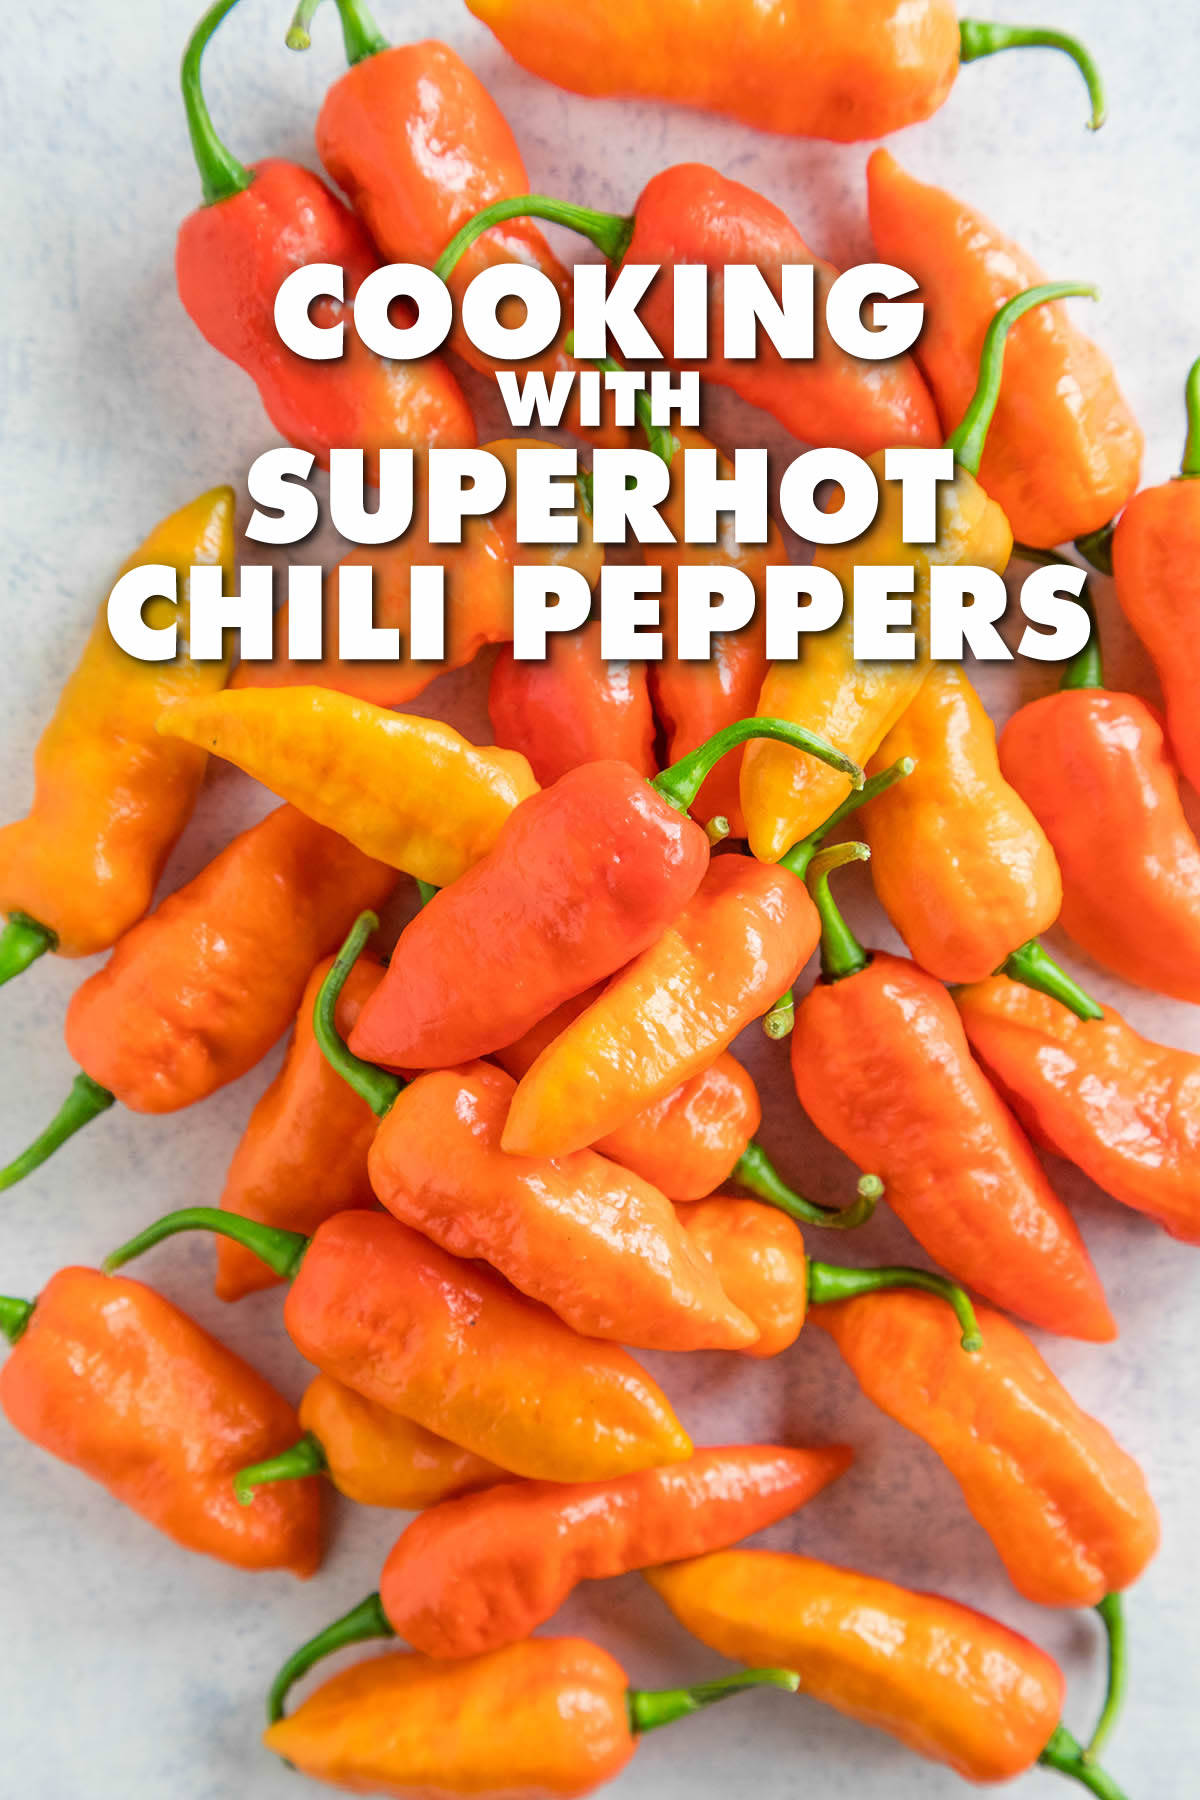 10 Tips for Cooking with Superhot Chili Peppers